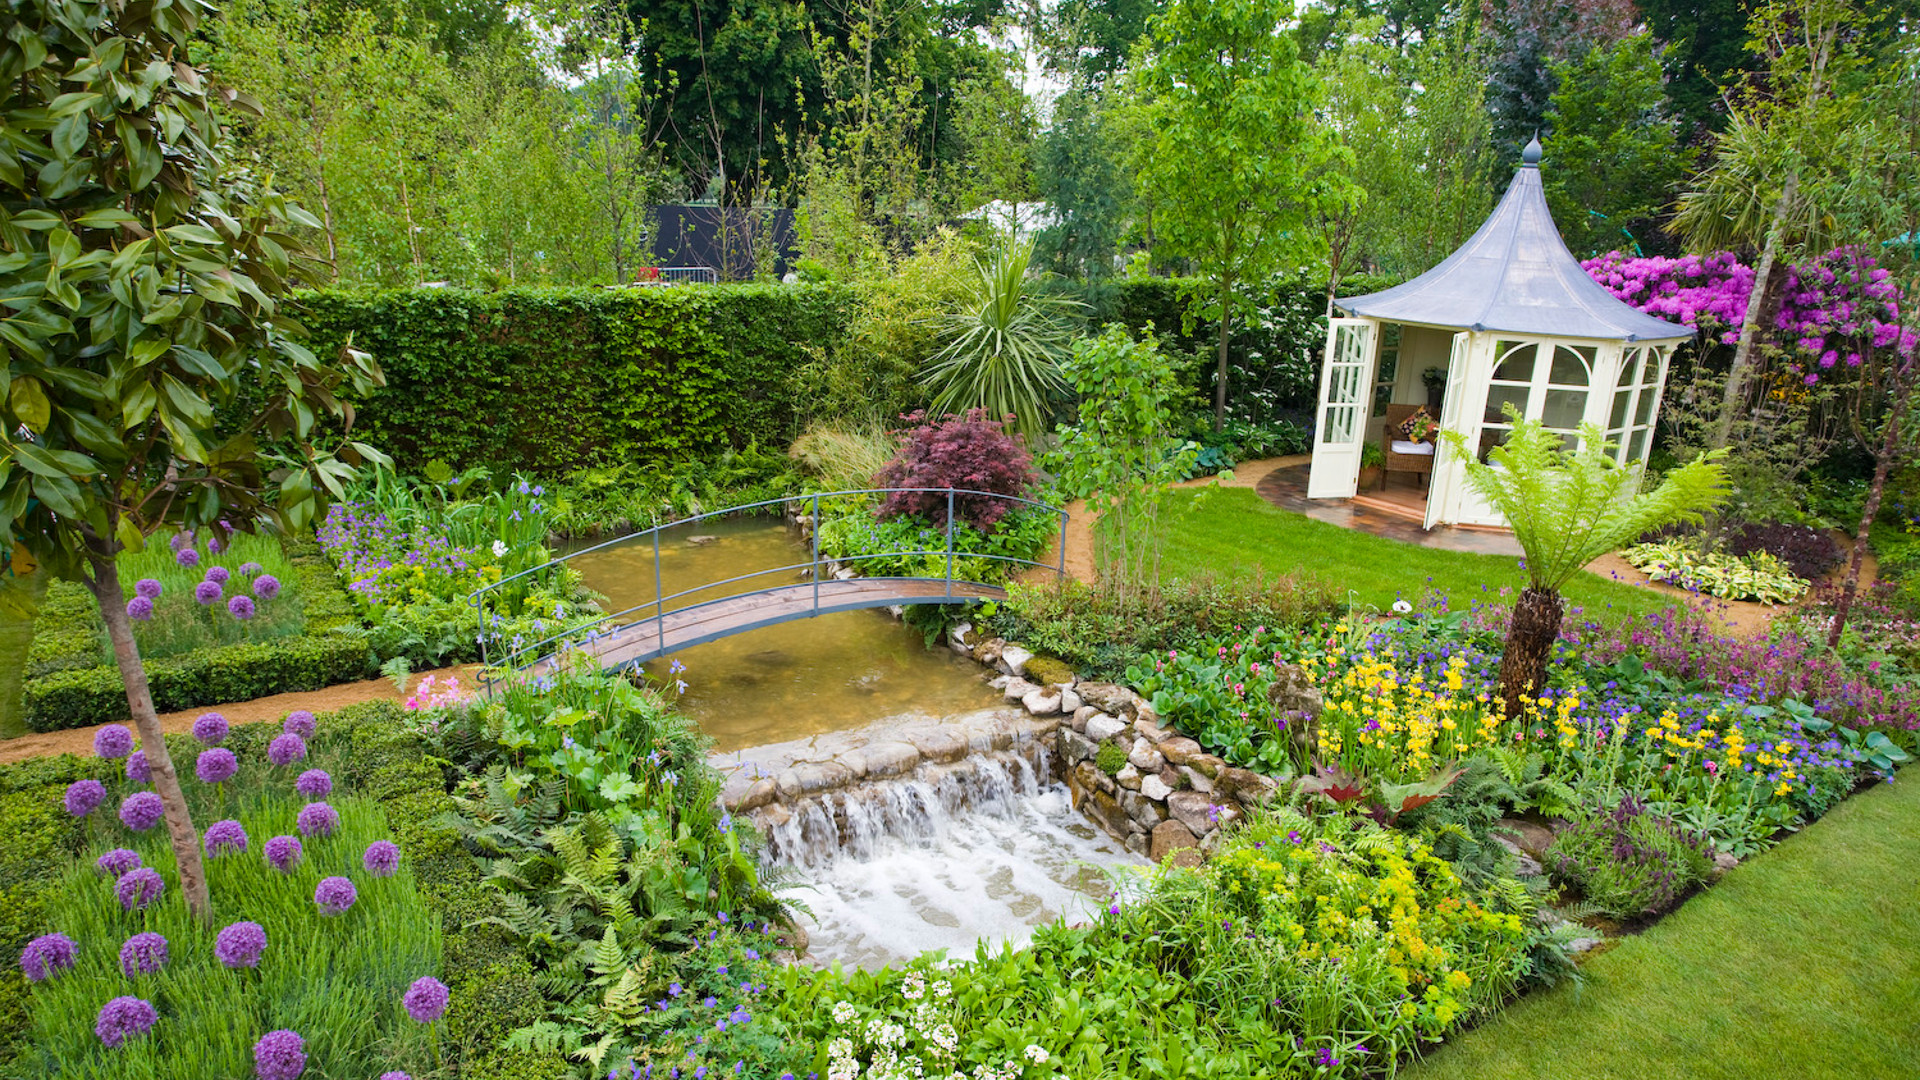 Tim austen garden designs designer gardens for Garden design blogs